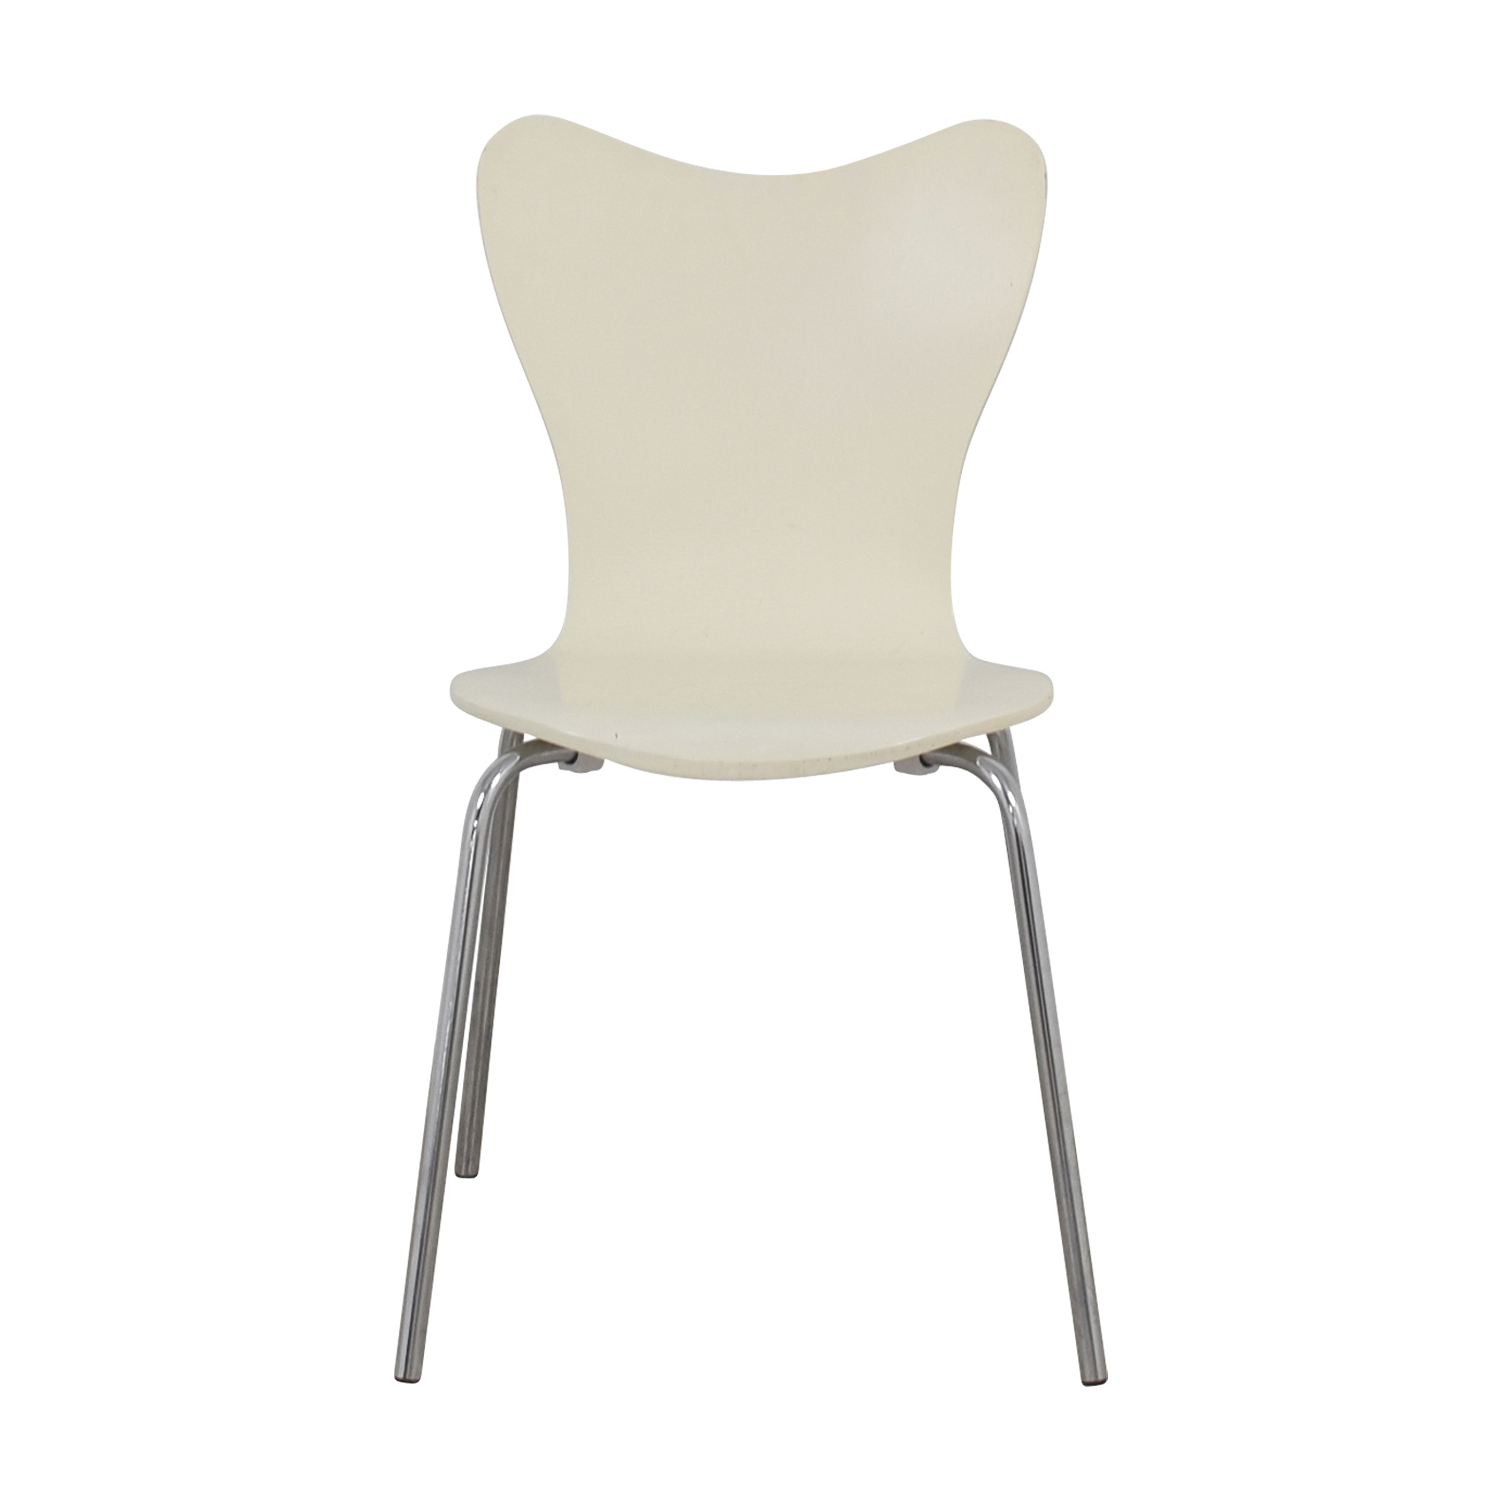 West Elm West Elm White Scoop Chair used